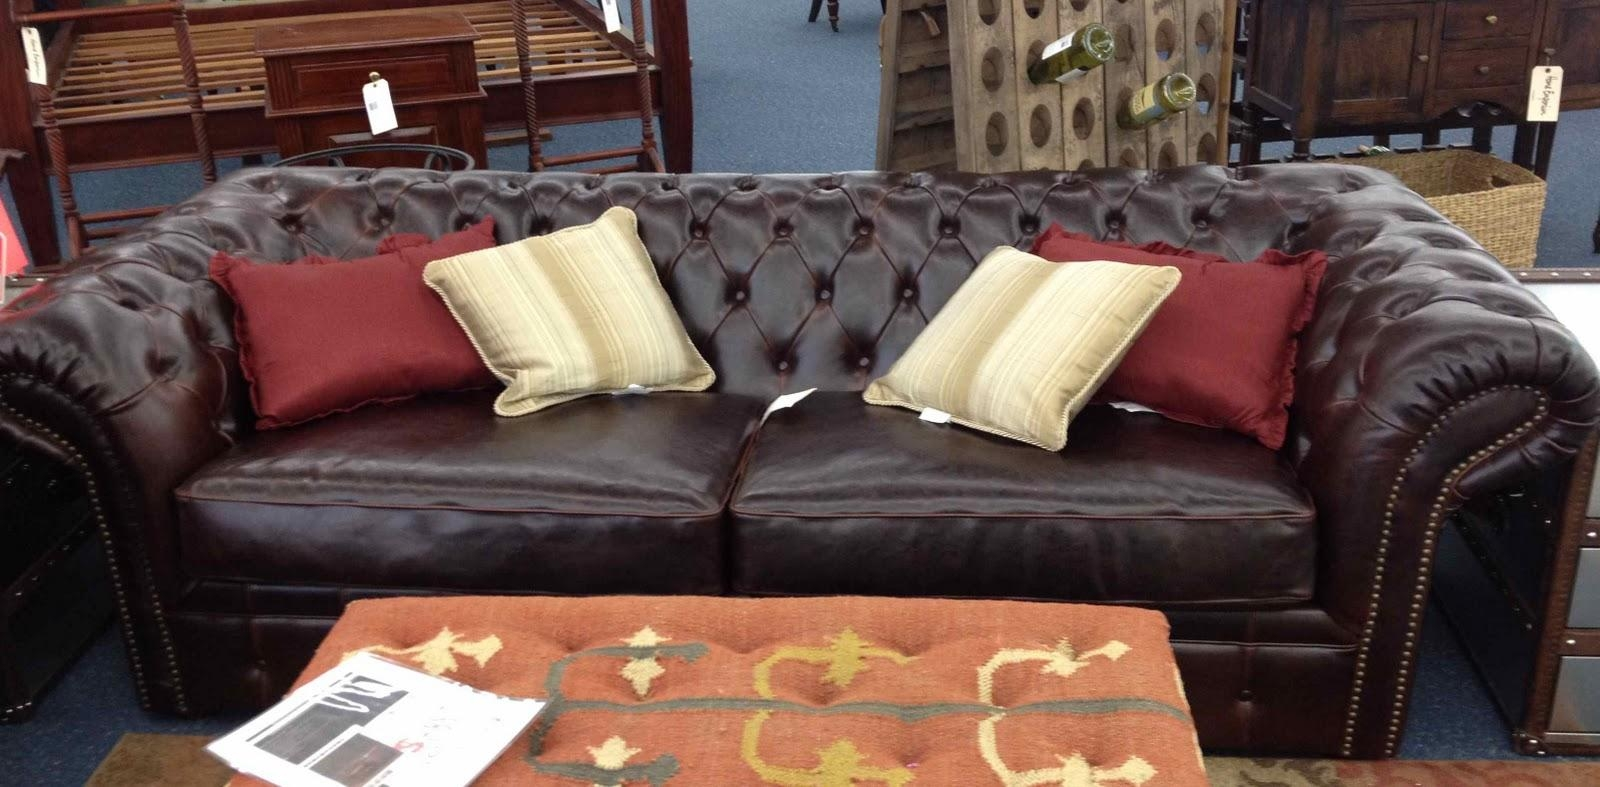 Love Restoration Hardware But Don't Love The Price Tags? | Driven Throughout Sofas Cincinnati (View 5 of 20)